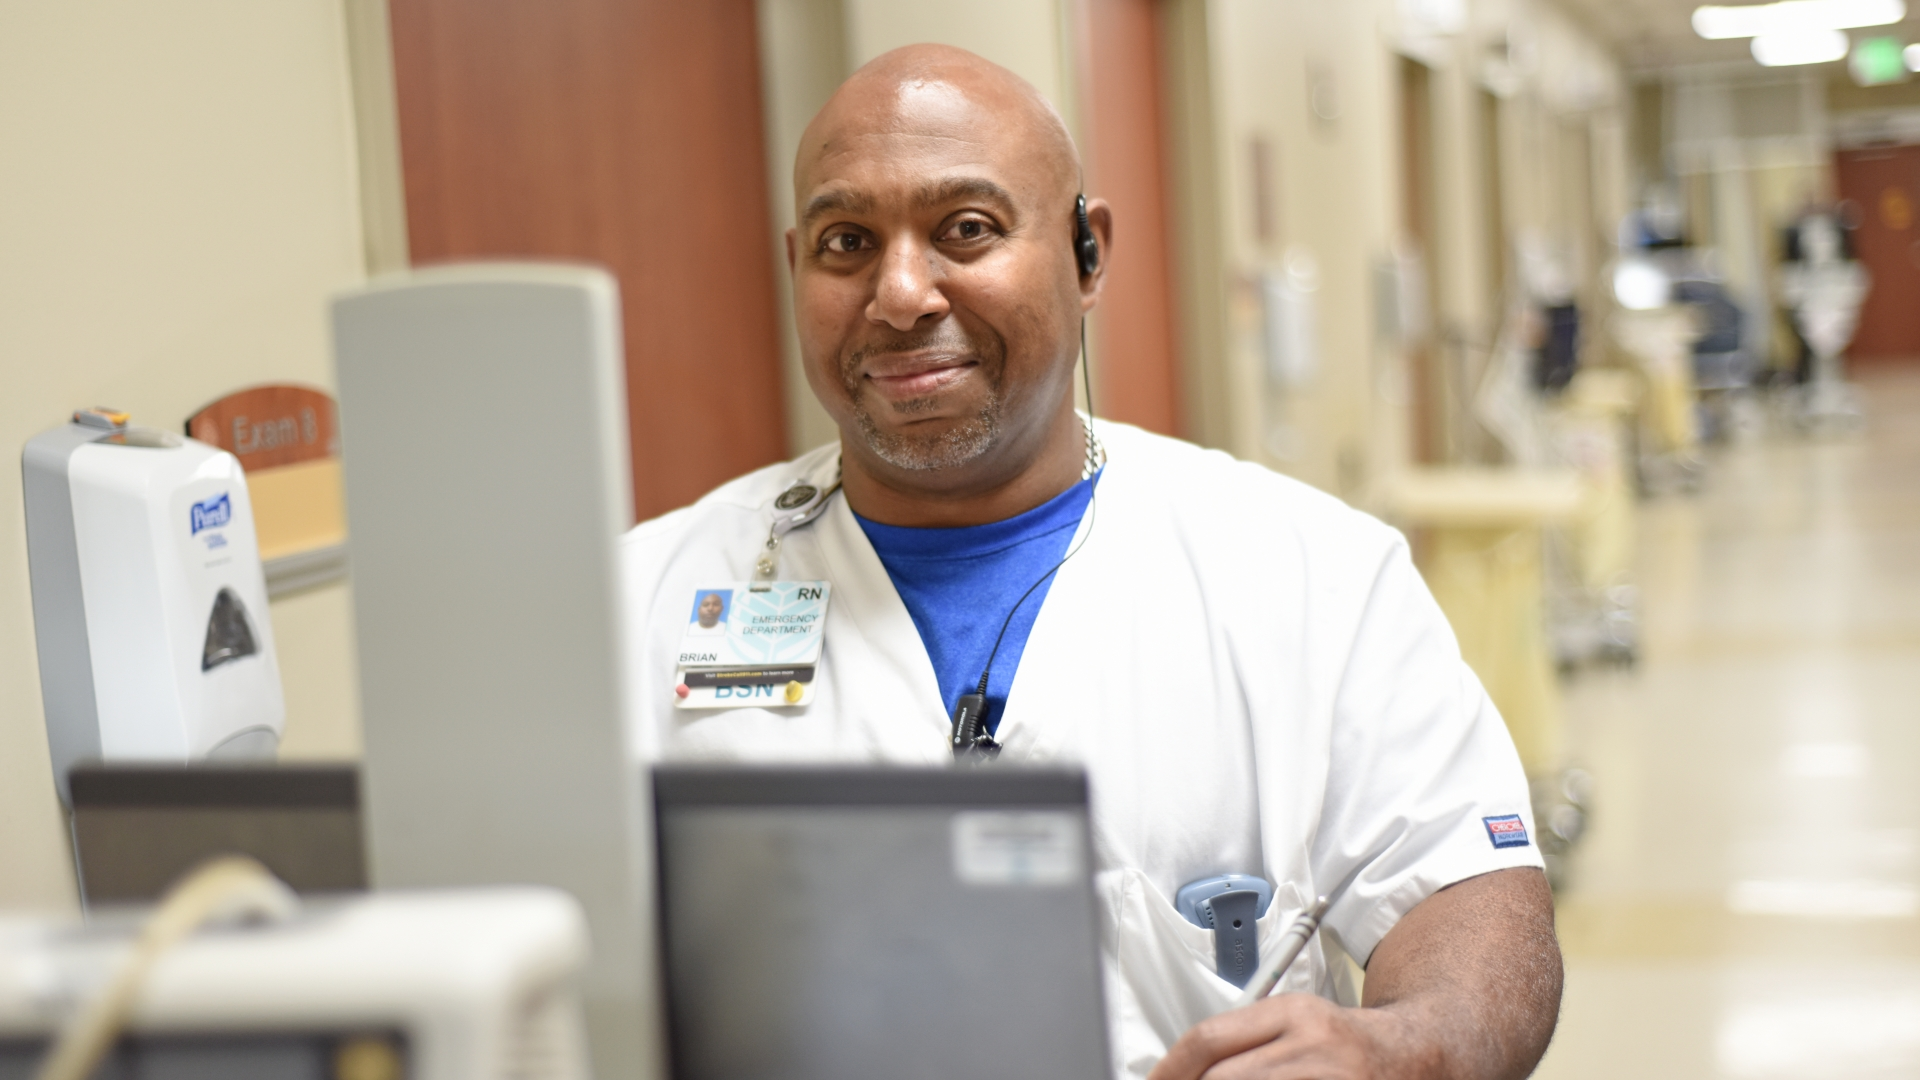 As part of its ongoing work to integrate with its Navicent Health locations in Georgia, Atrium Health has selected Epic as the standard, uniform platform for its electronic health records.